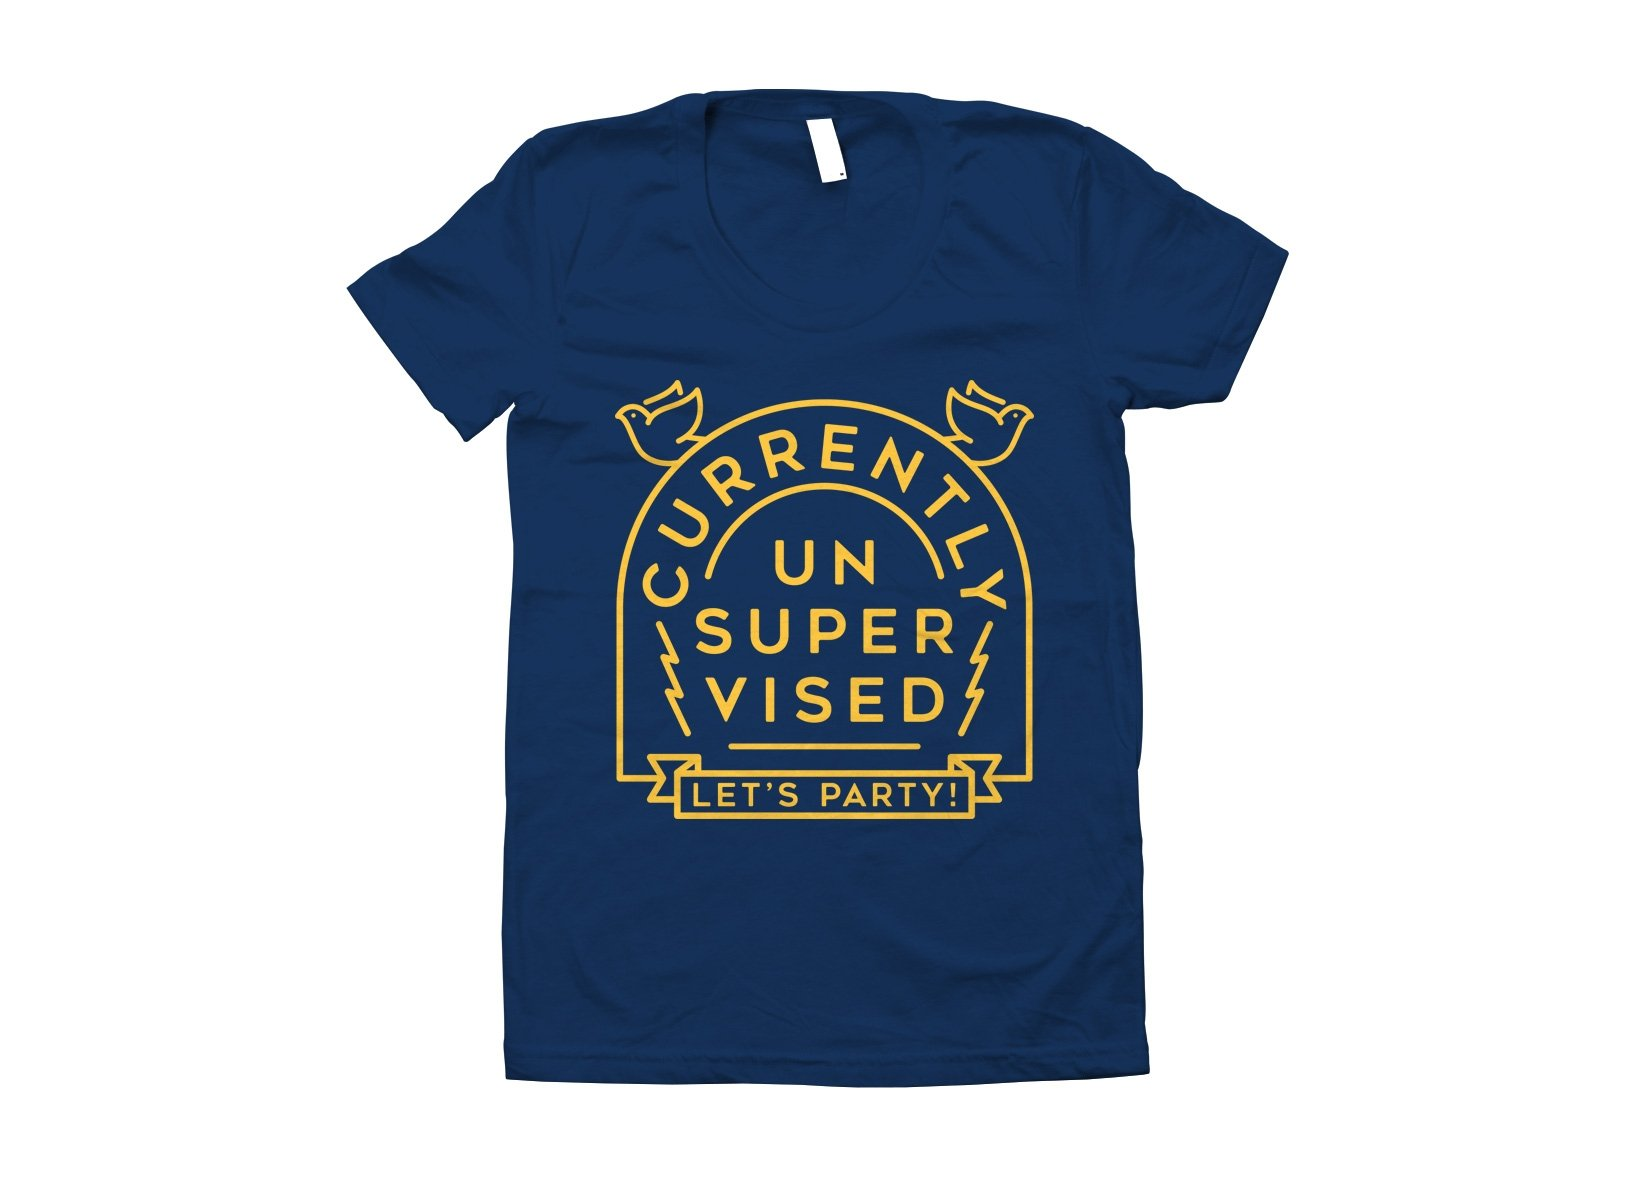 Currently Unsupervised on Juniors T-Shirt